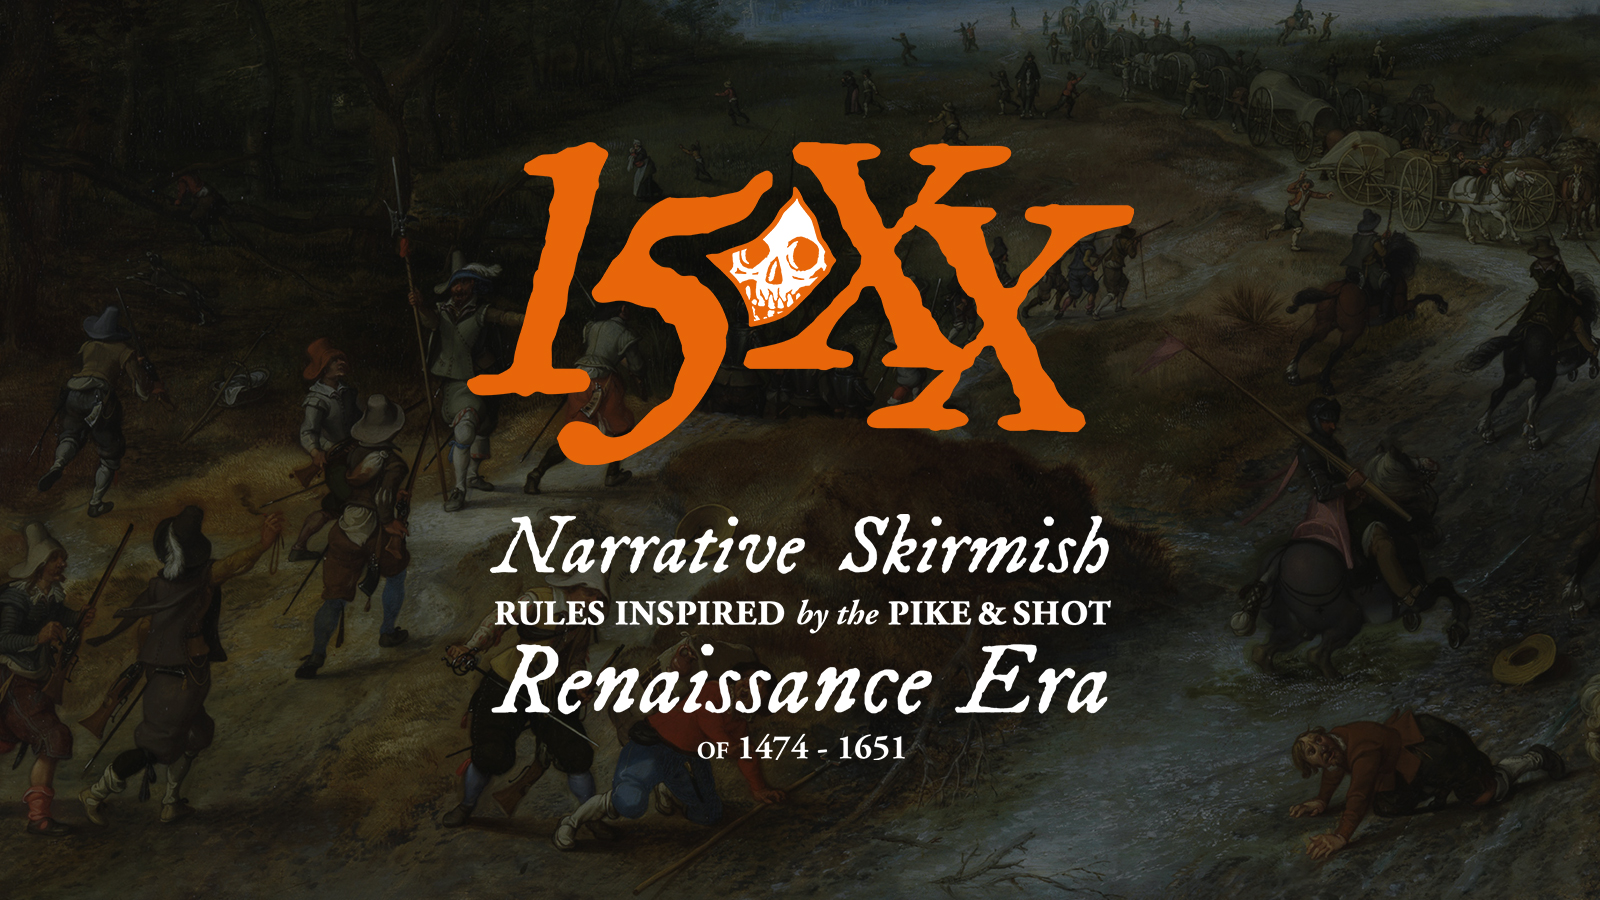 15XX: Narrative Skirmish Rules Inspired by the Pike & Shot Renaissance Era of 1474-1651